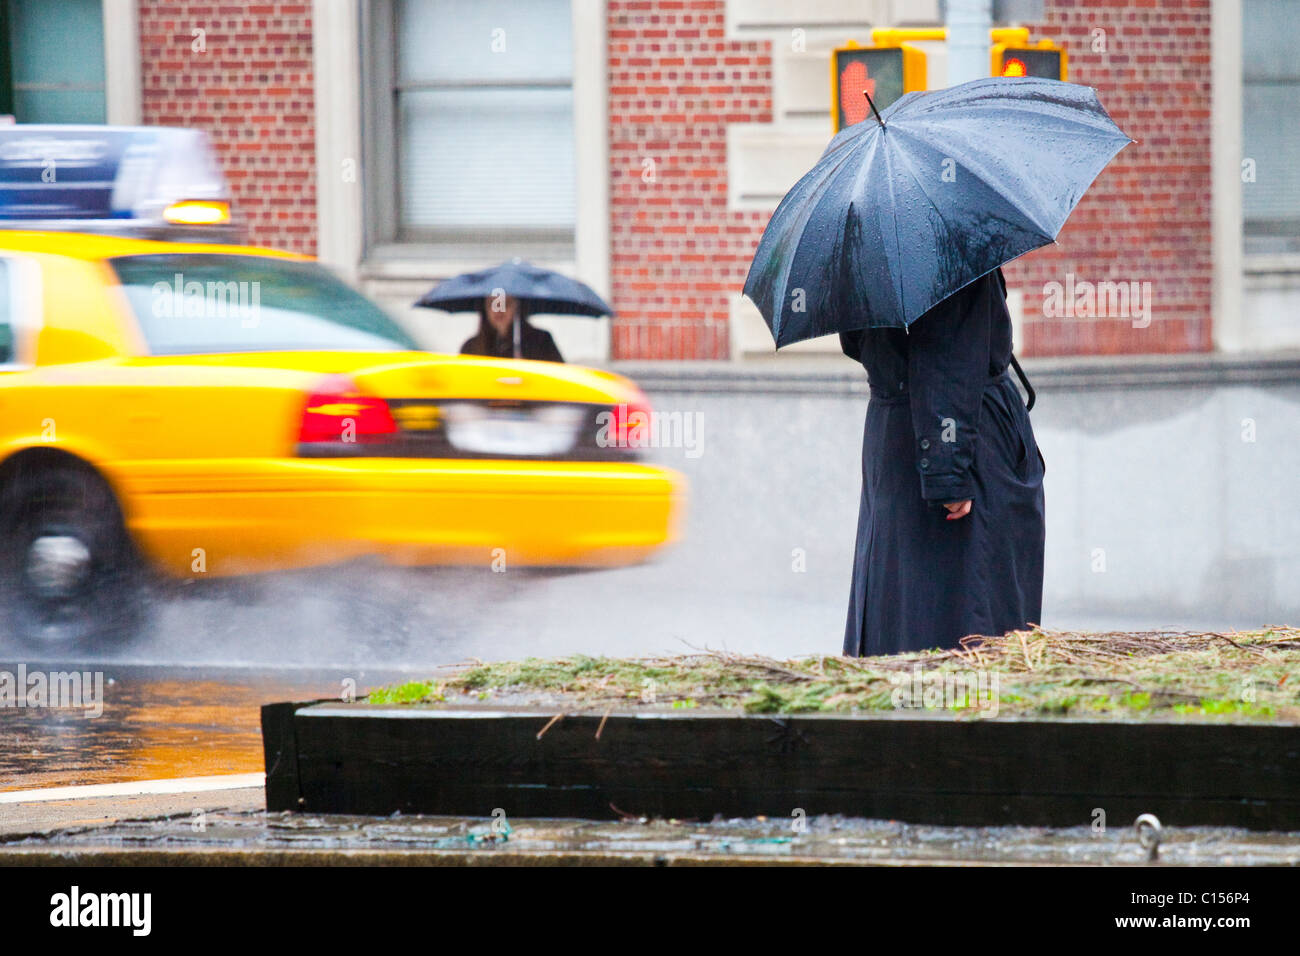 Raining on the Upper East Side, Manhattan, New York City - Stock Image